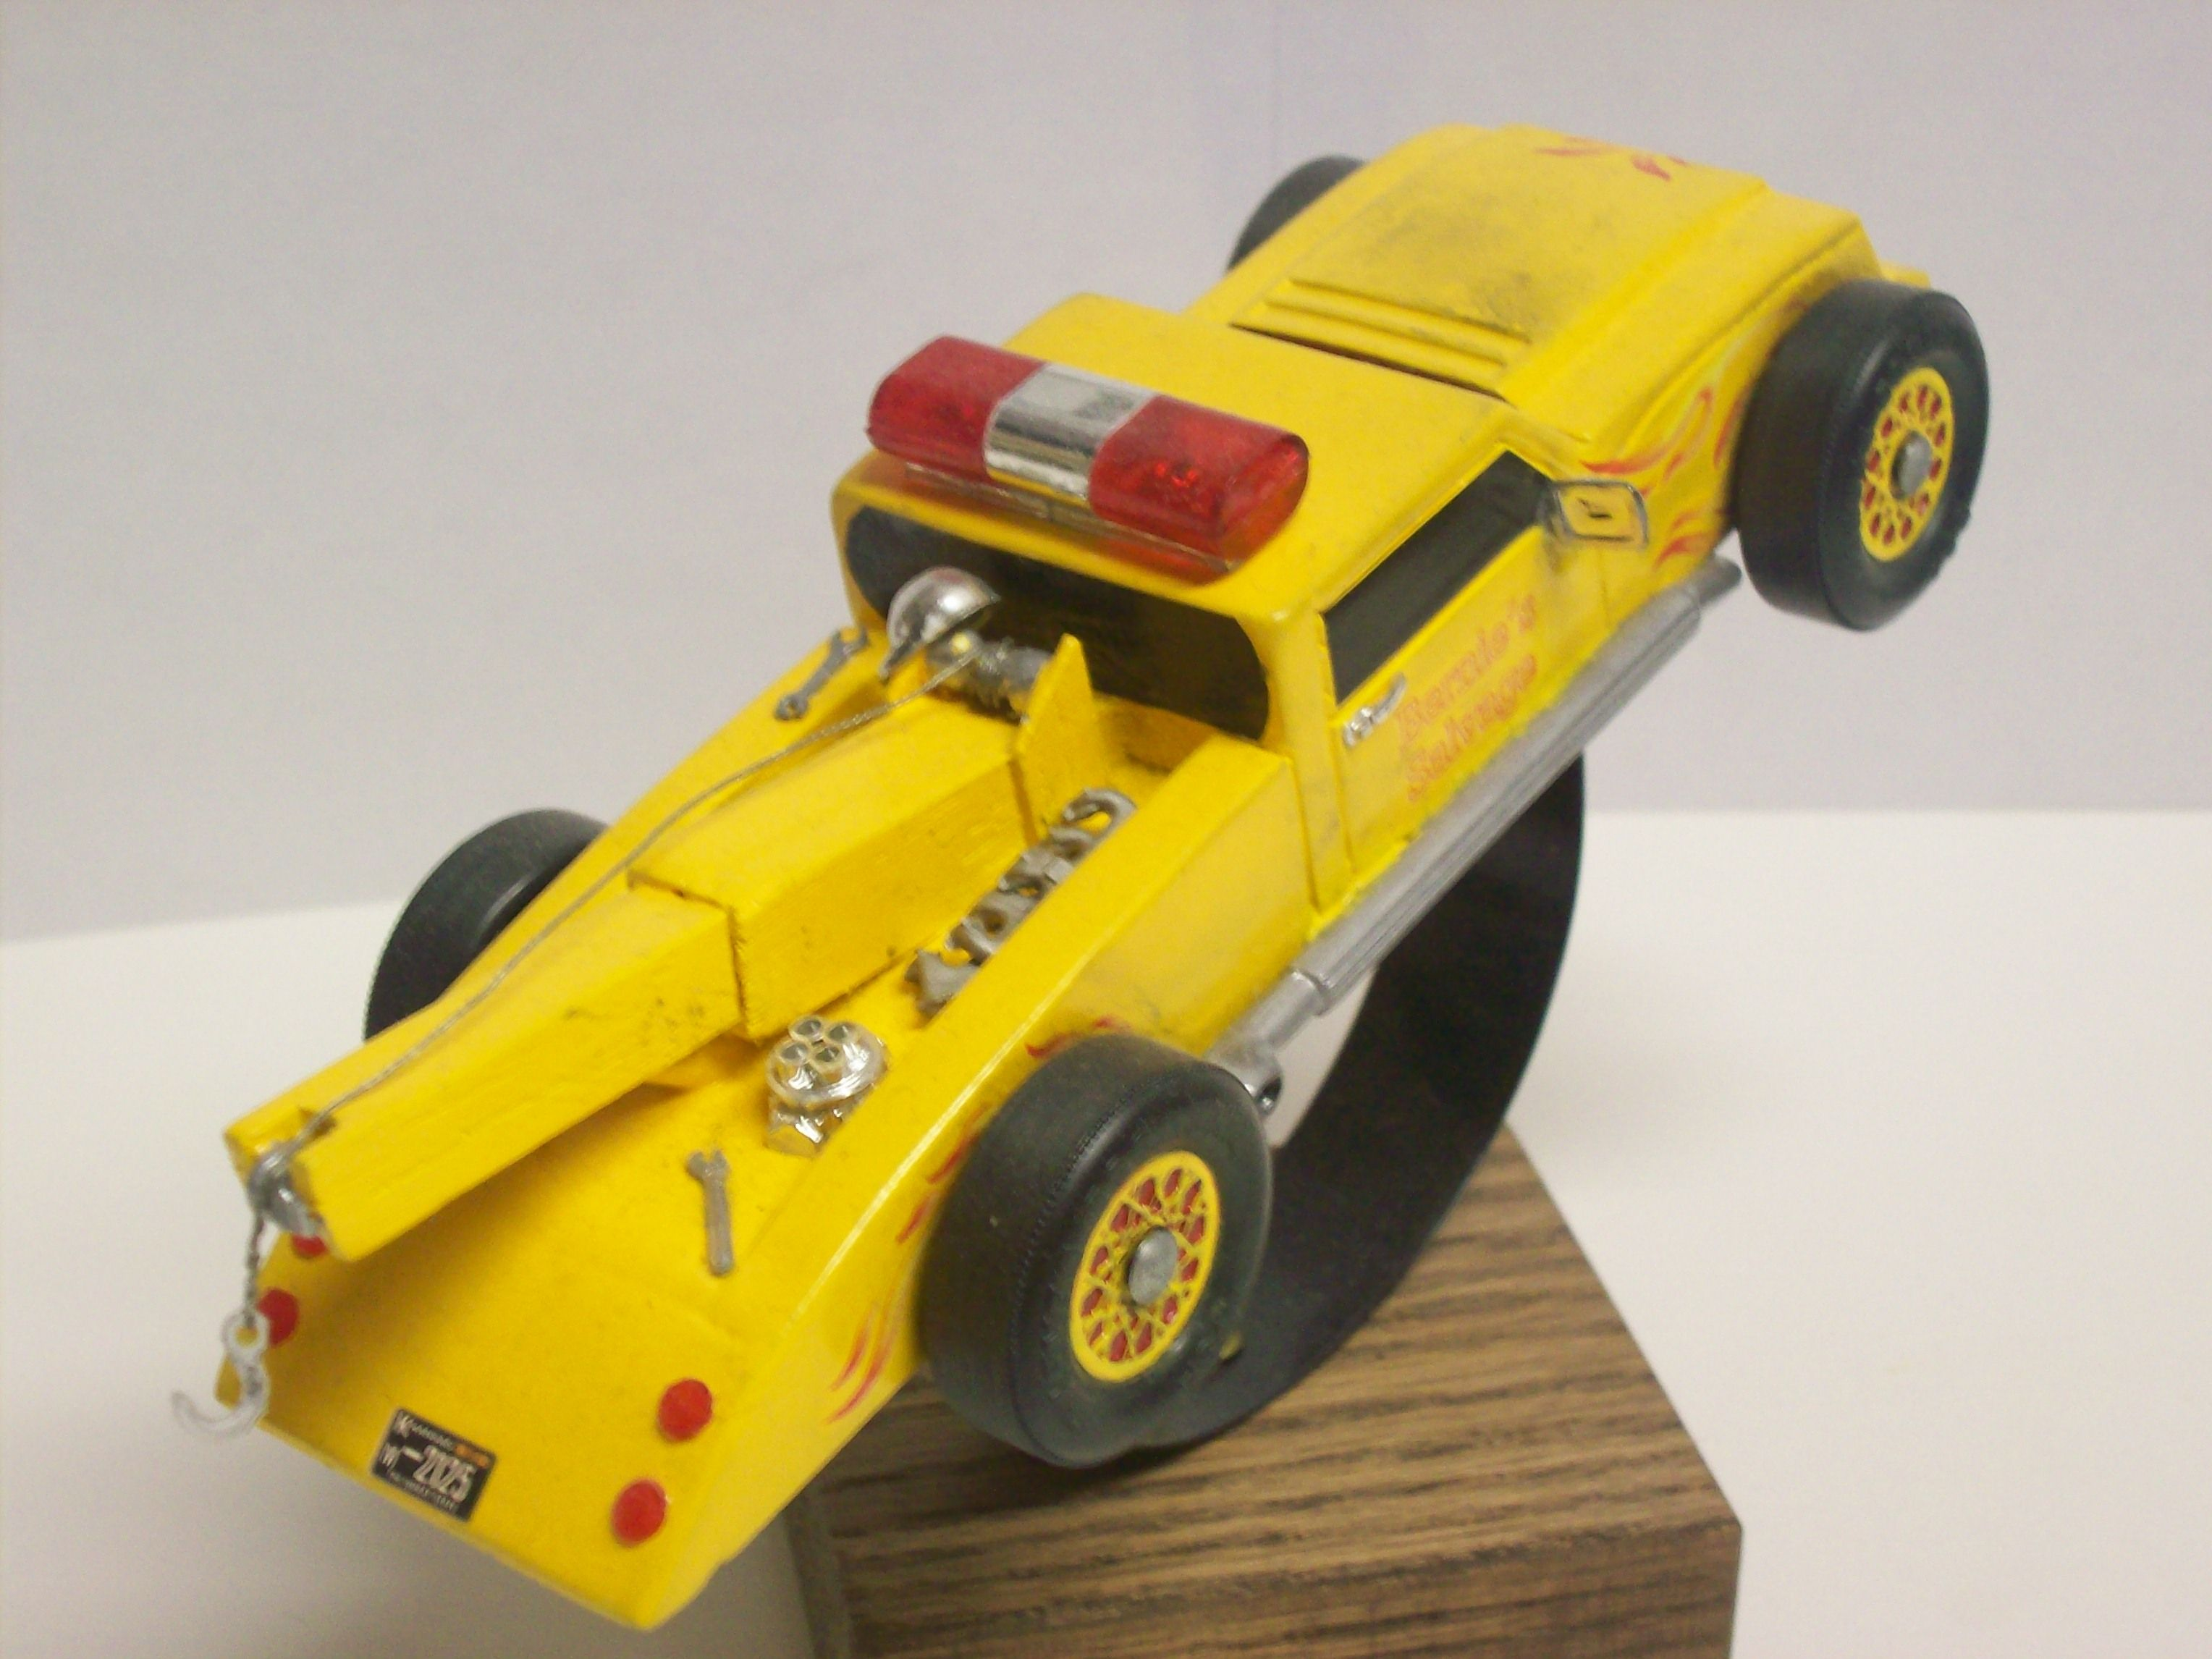 looking for pinewood derby design ideas browse our photos of more than 100 amazing pinewood derby cars - Pinewood Derby Car Design Ideas